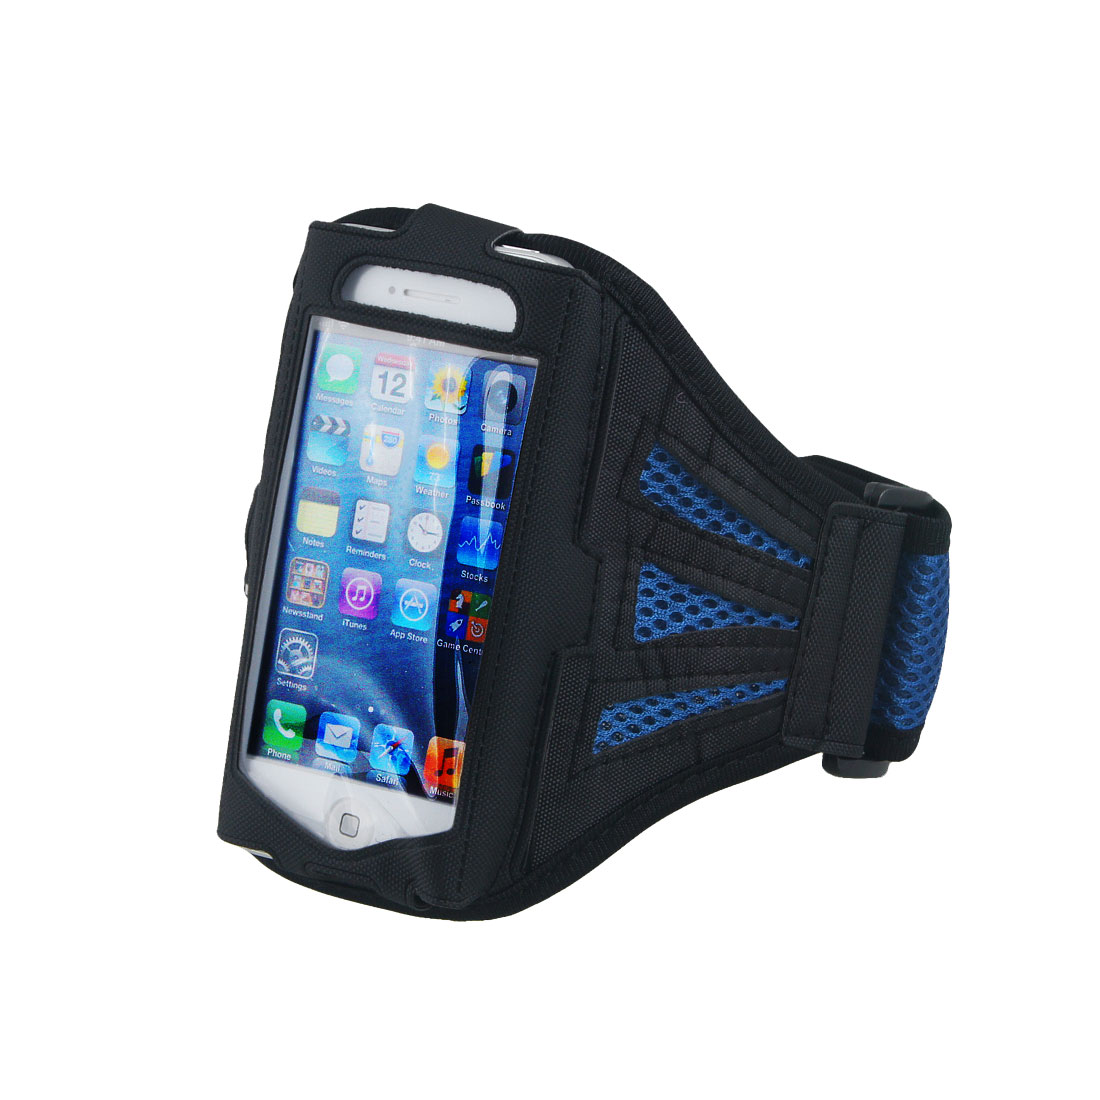 Premium Blue Mesh Running Sports Gym Armband Case Cover for Phone